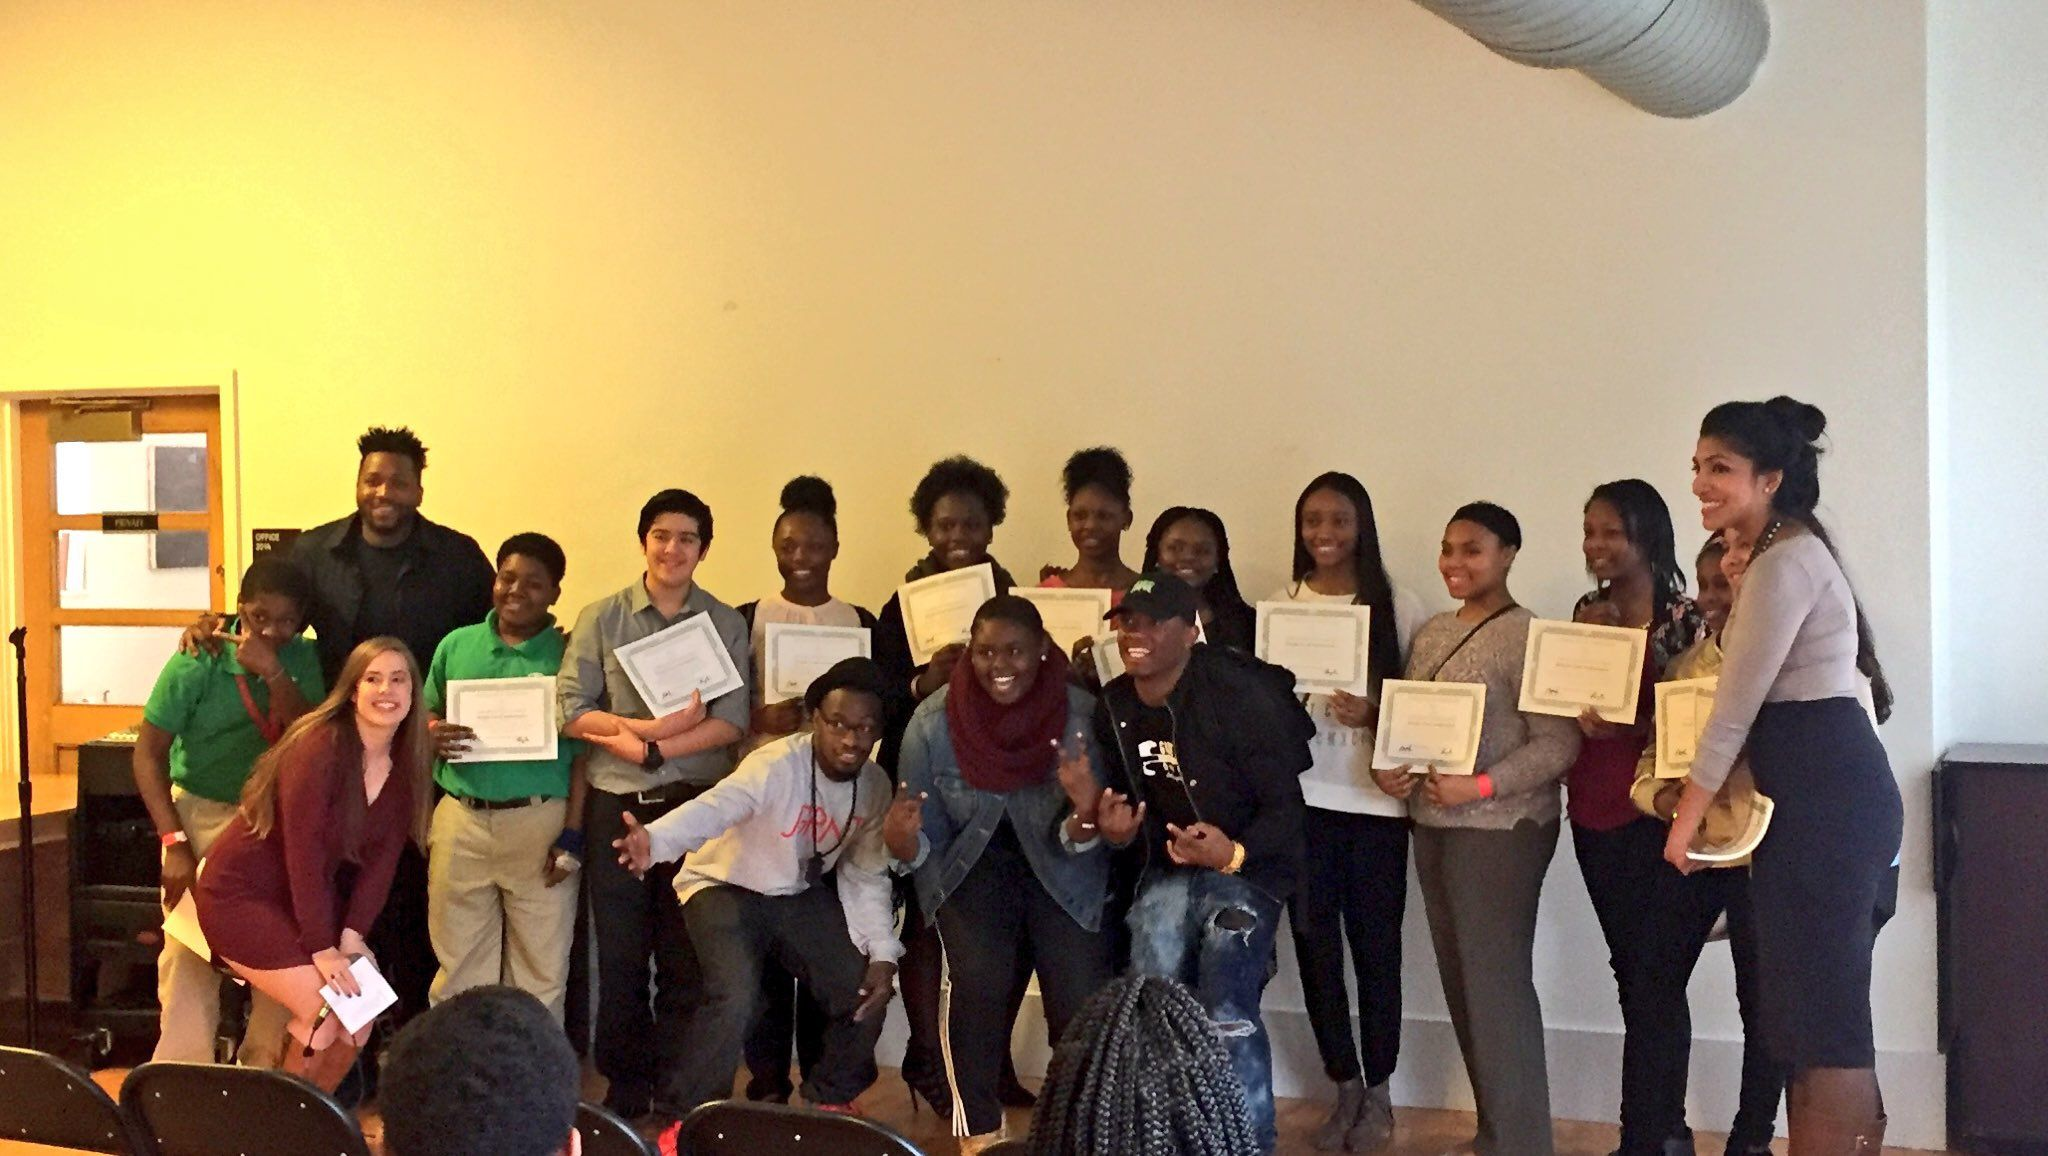 #TheSimpleGood students showcasing their certificates and sharing a group photo with #Chicago artists after their showcase at the Art in Public Life Incubator in #HydePark #Chicago